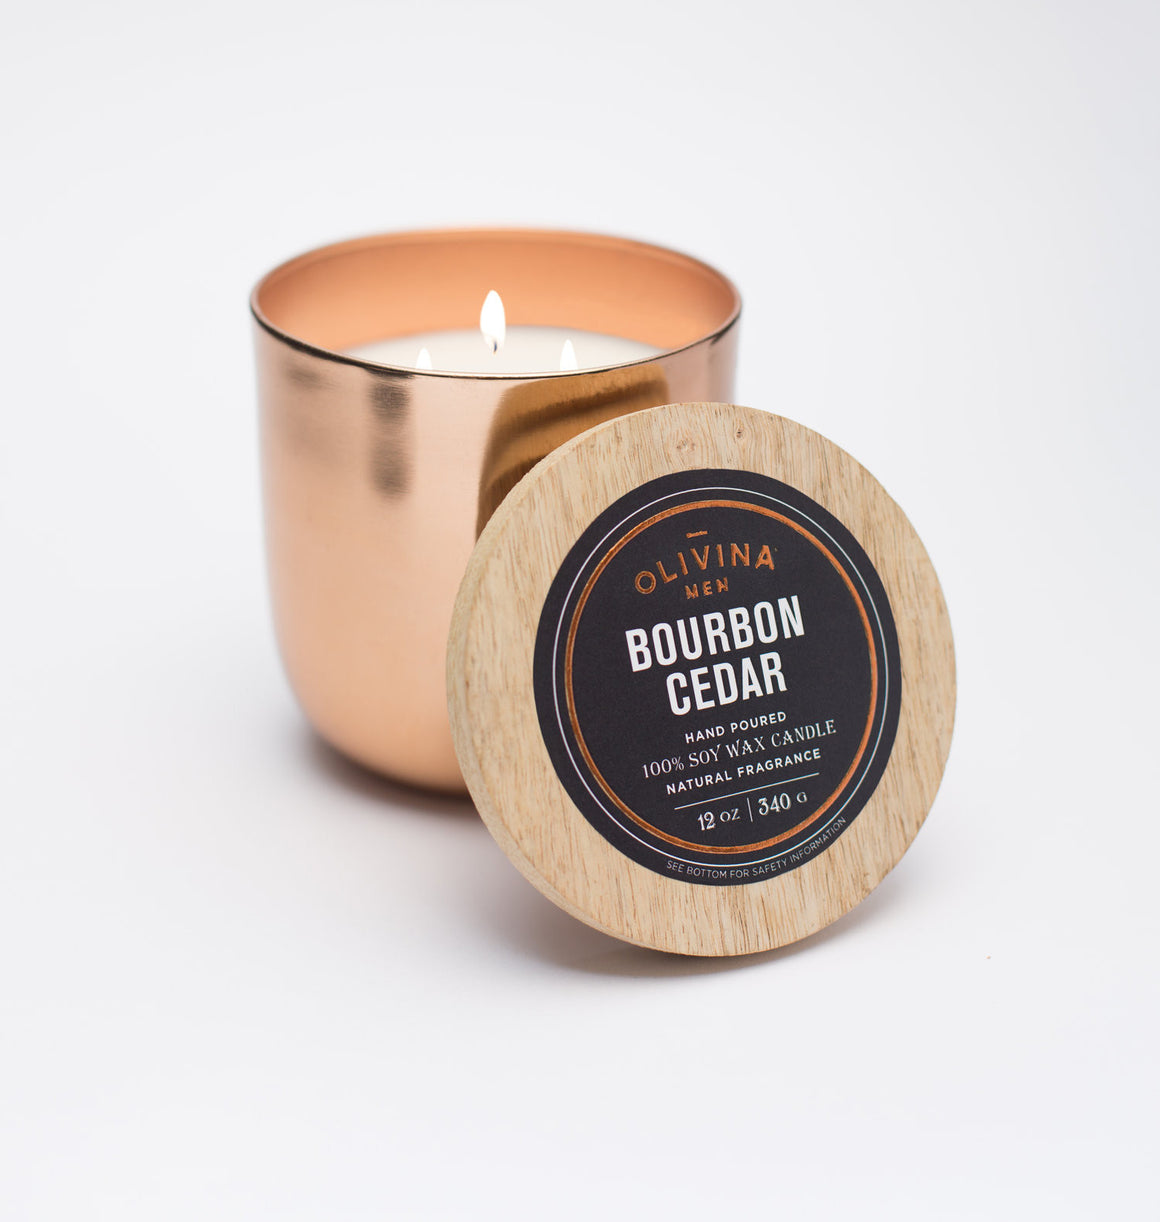 Alchemy Copper Candle - Bourbon Cedar - 12 Oz